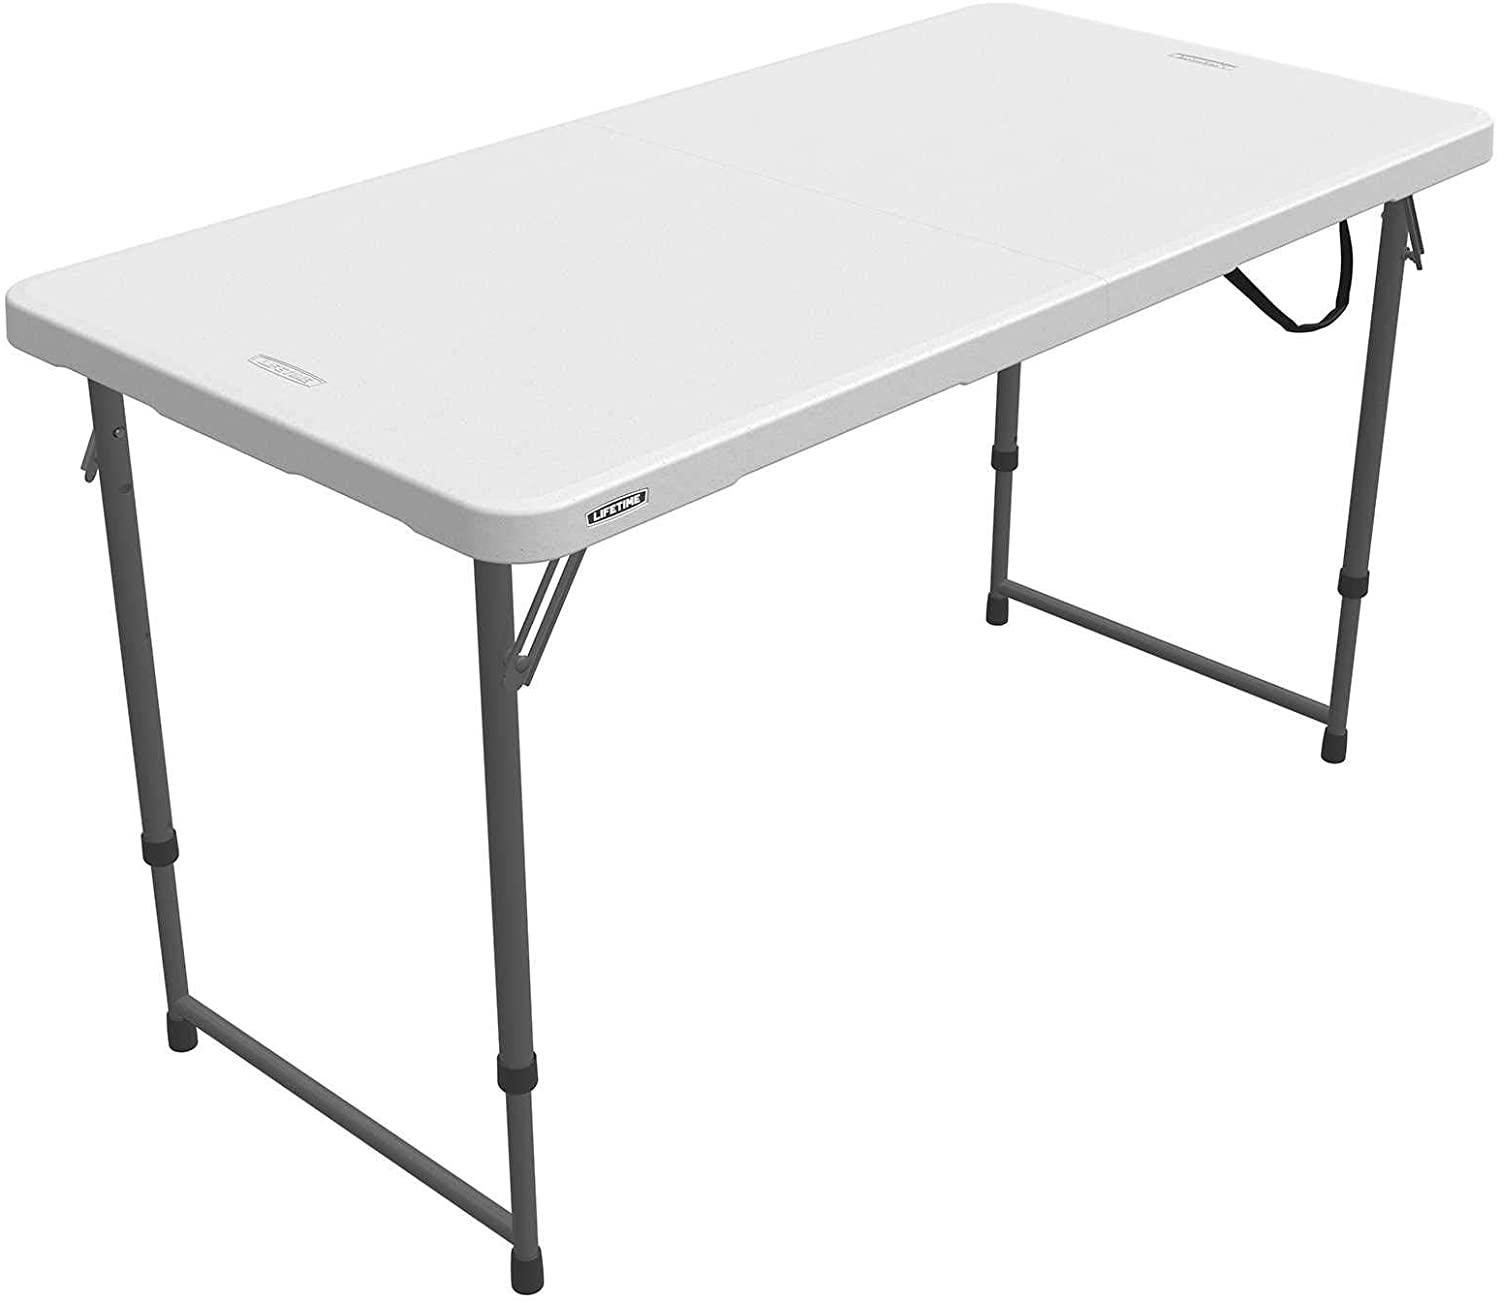 Lifetime Height Adjustable Craft Camping and Utility Folding Table